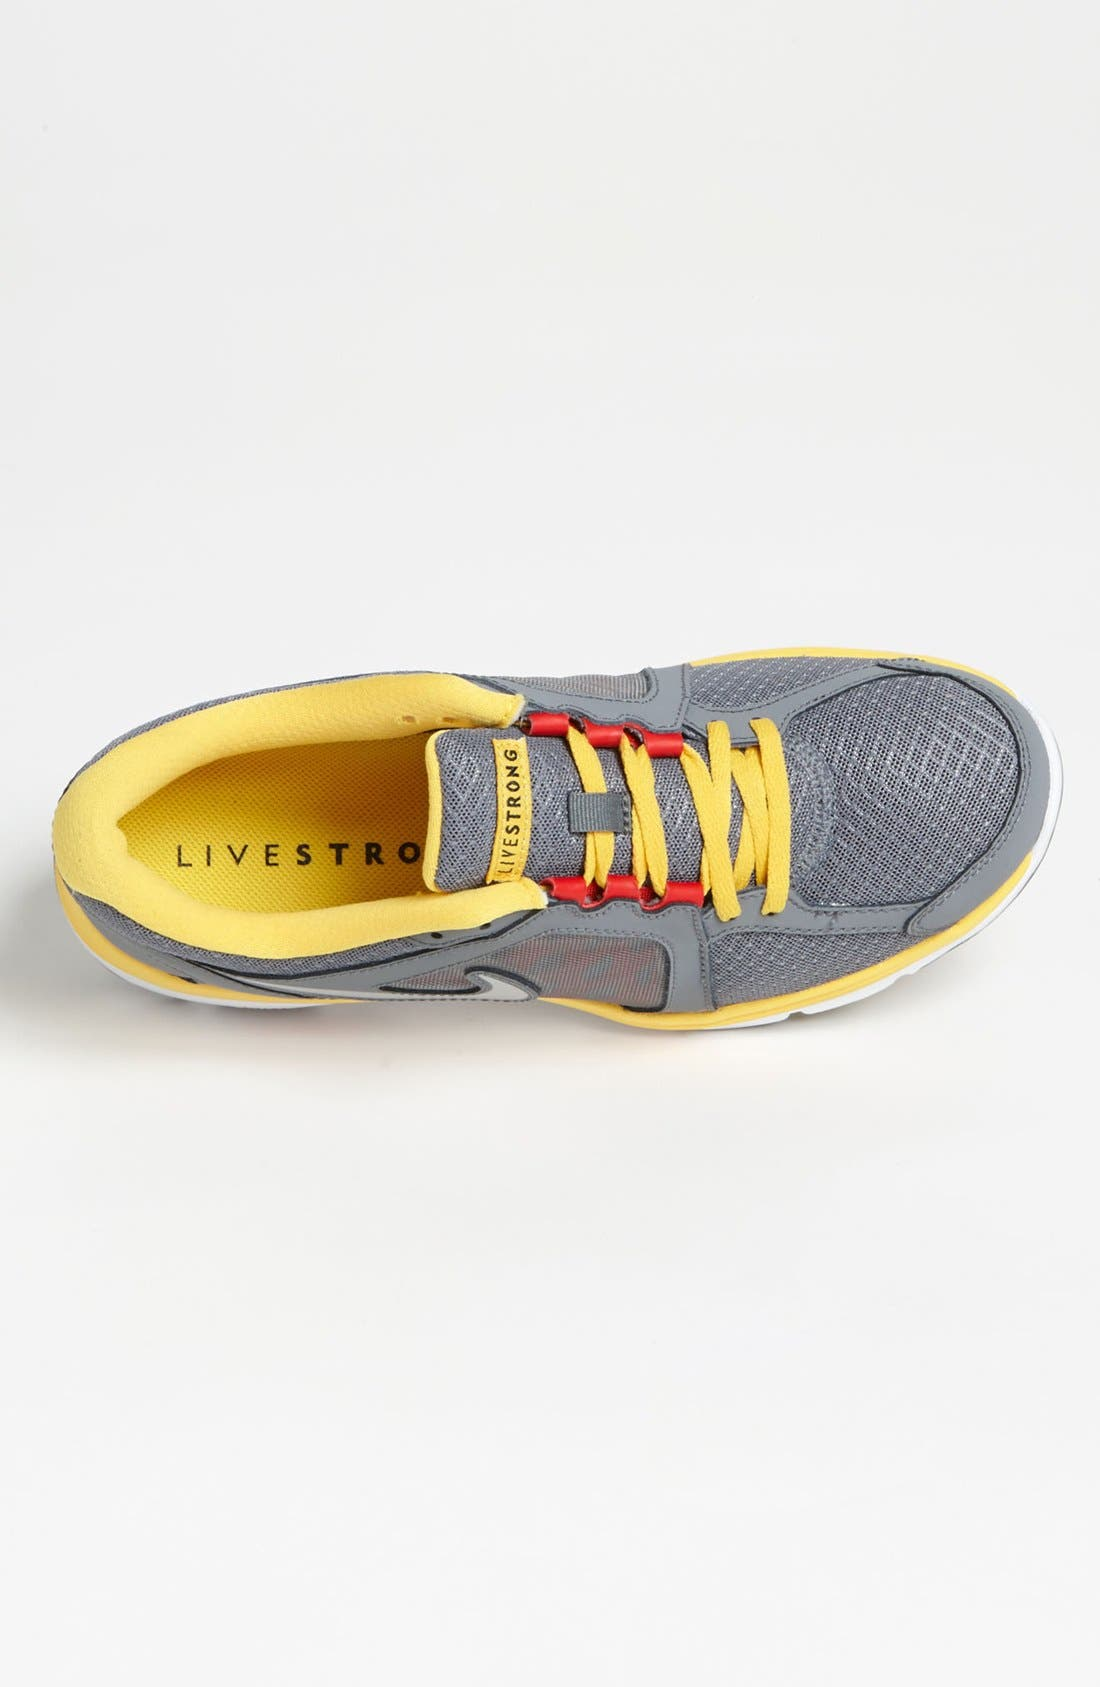 Alternate Image 3  - Nike 'Dual Fusion Run Livestrong' Running Shoe (Men)